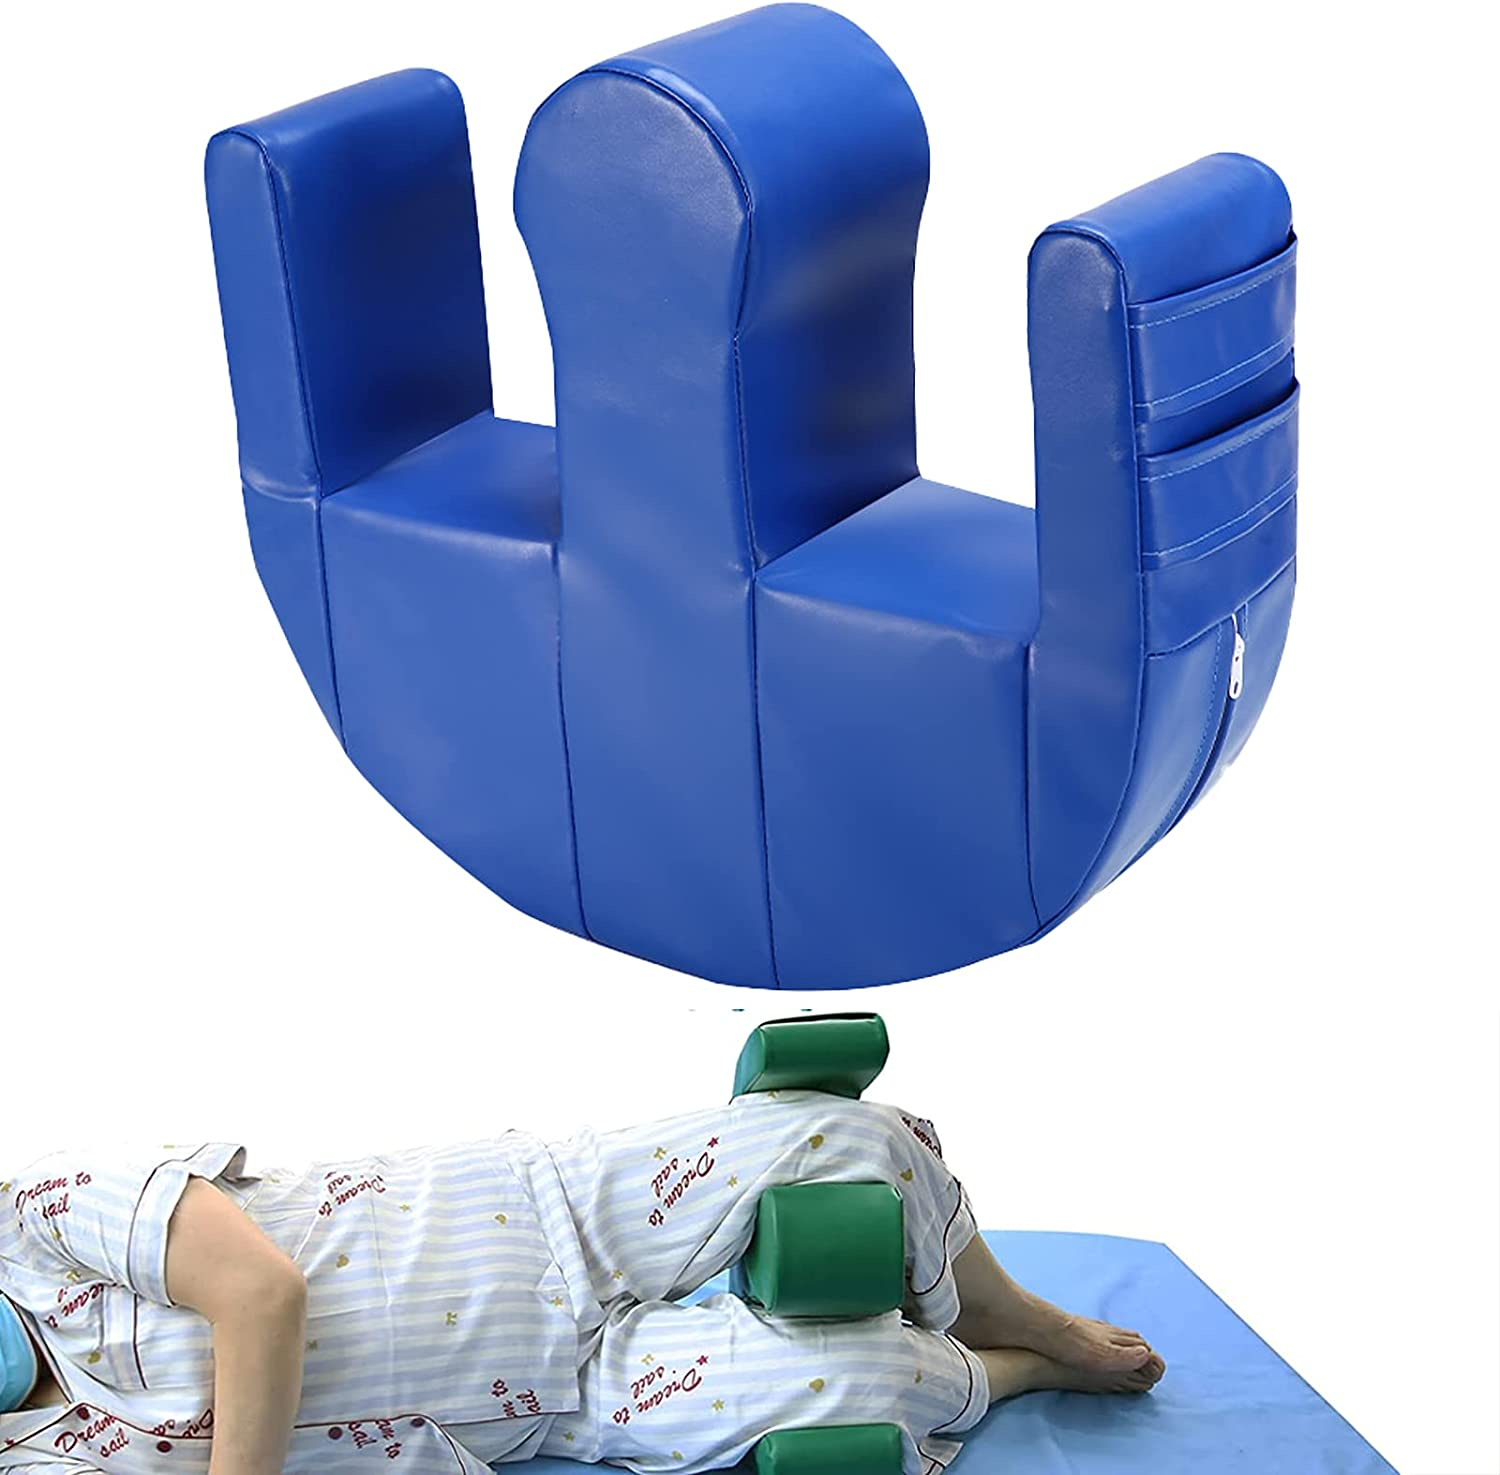 NMBERIOSD 2021 Max 53% OFF New Upgrade Bed Multi Rest Device Patient All stores are sold Turning